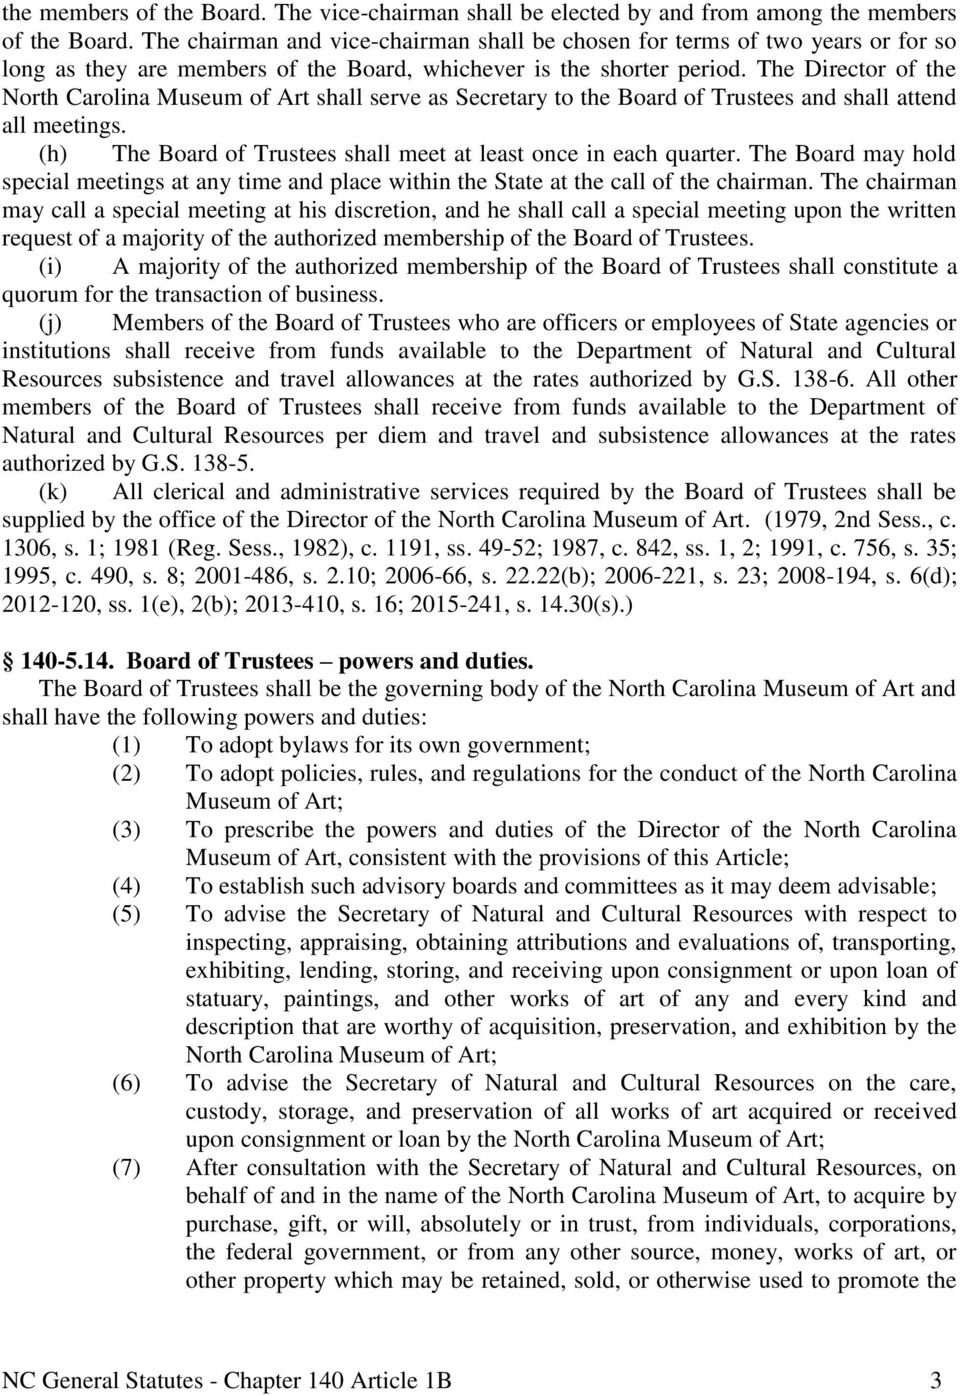 The Director of the North Carolina Museum of Art shall serve as Secretary to the Board of Trustees and shall attend all meetings. (h) The Board of Trustees shall meet at least once in each quarter.